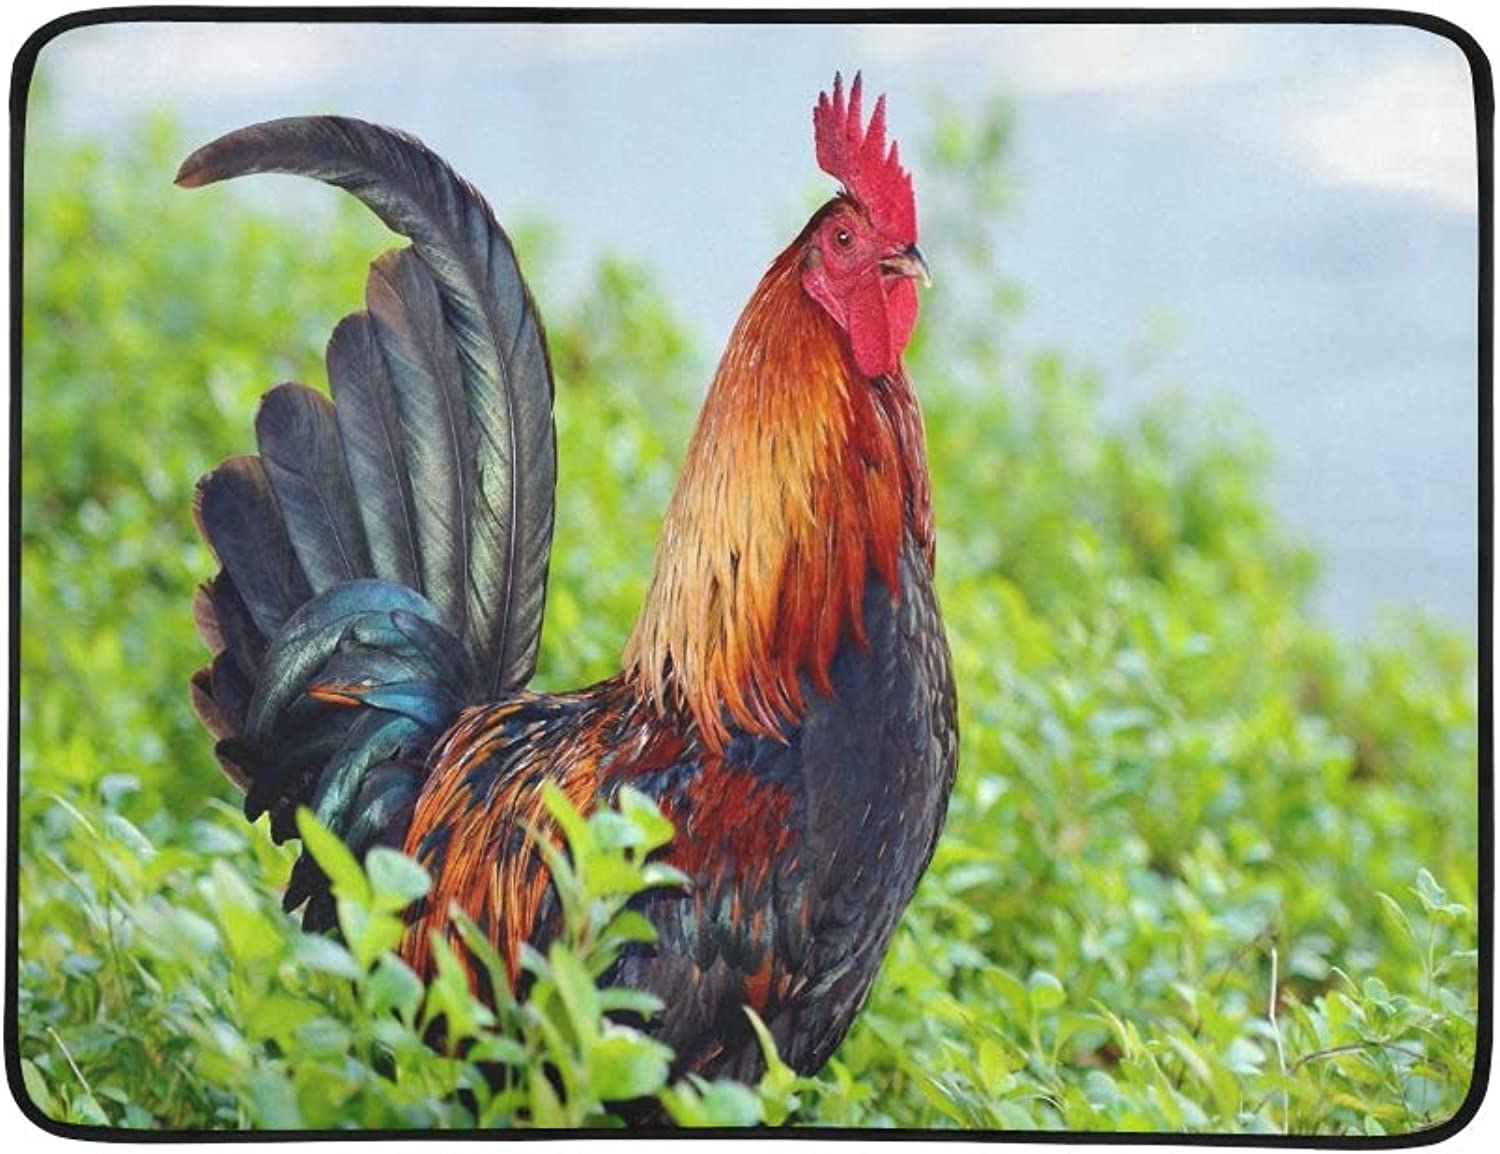 colorful Rooster Standing Tall Ground Cover Portable and Foldable Blanket Mat 60x78 Inch Handy Mat for Camping Picnic Beach Indoor Outdoor Travel